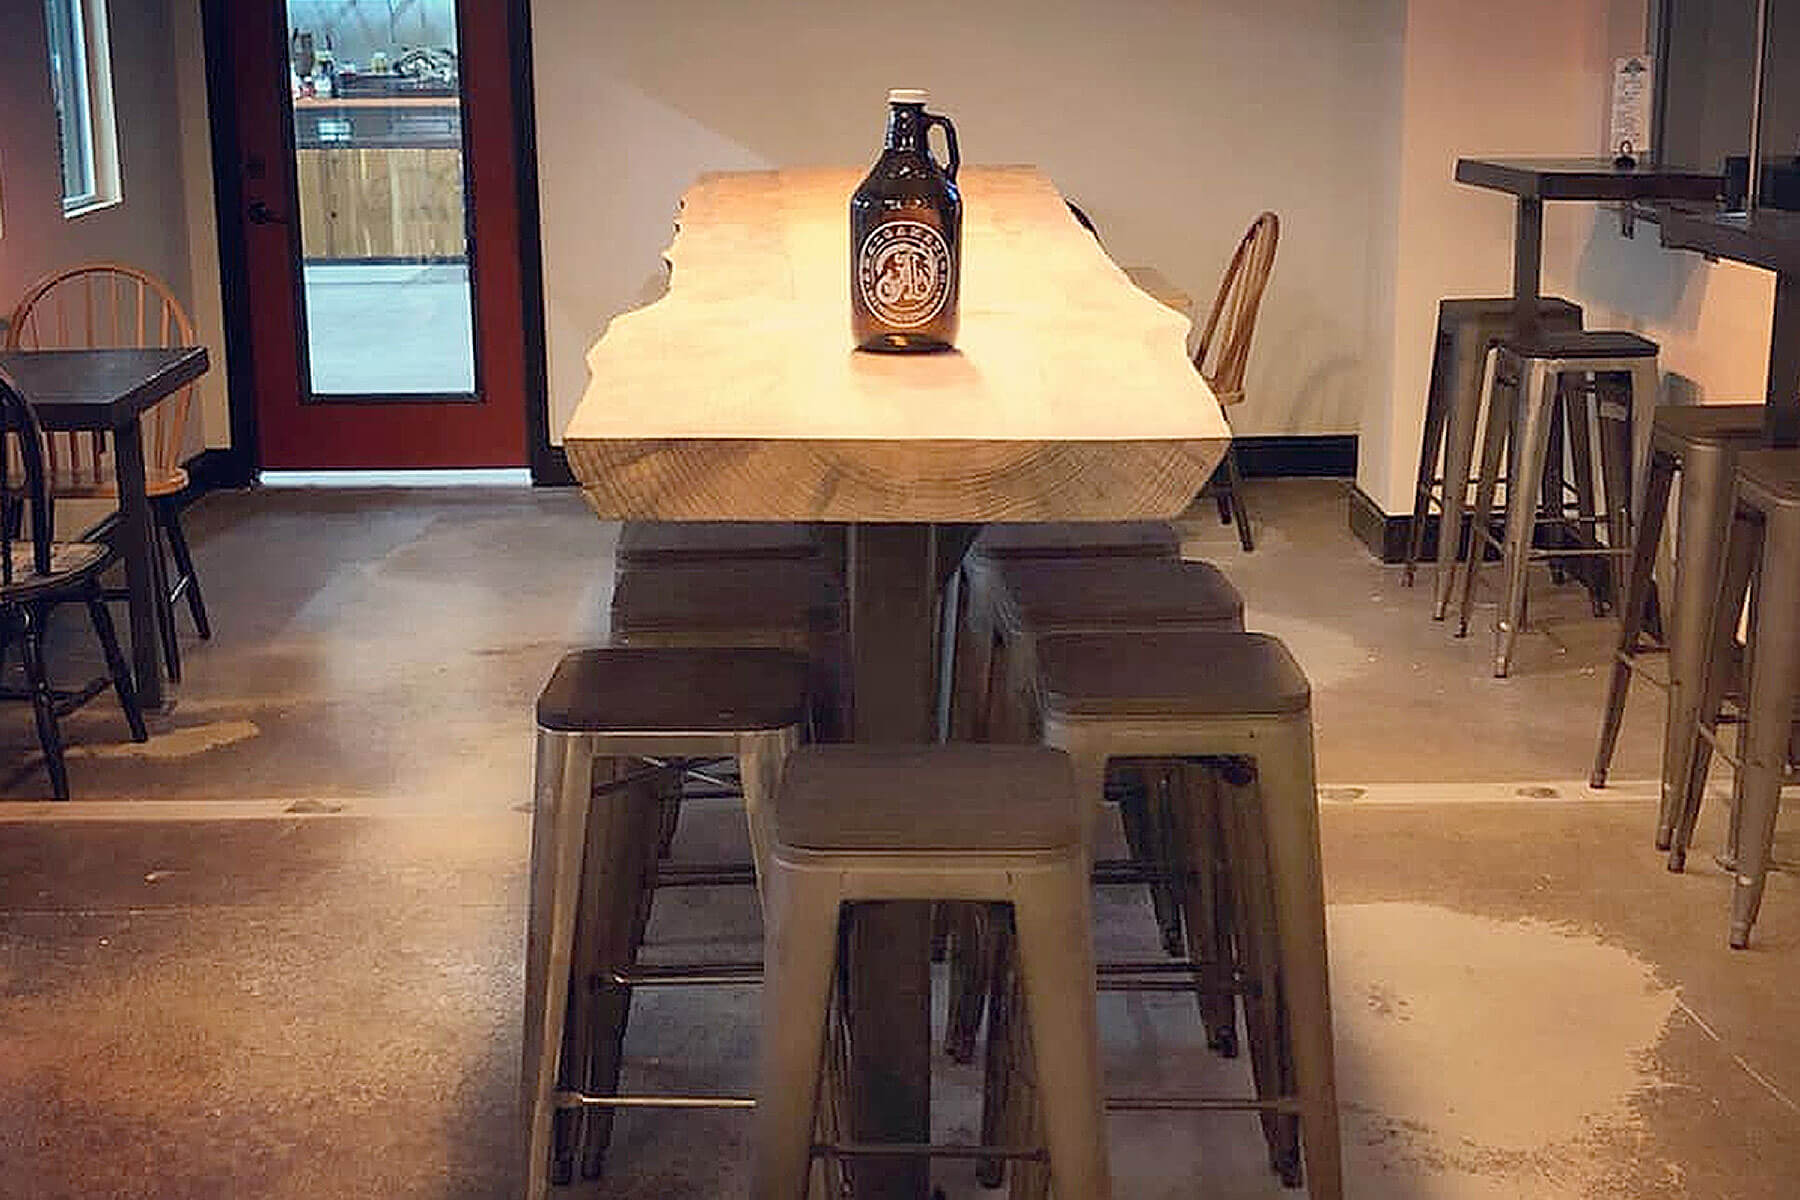 Inside the taproom at Amalgamation Brewing Company in Fresno, California